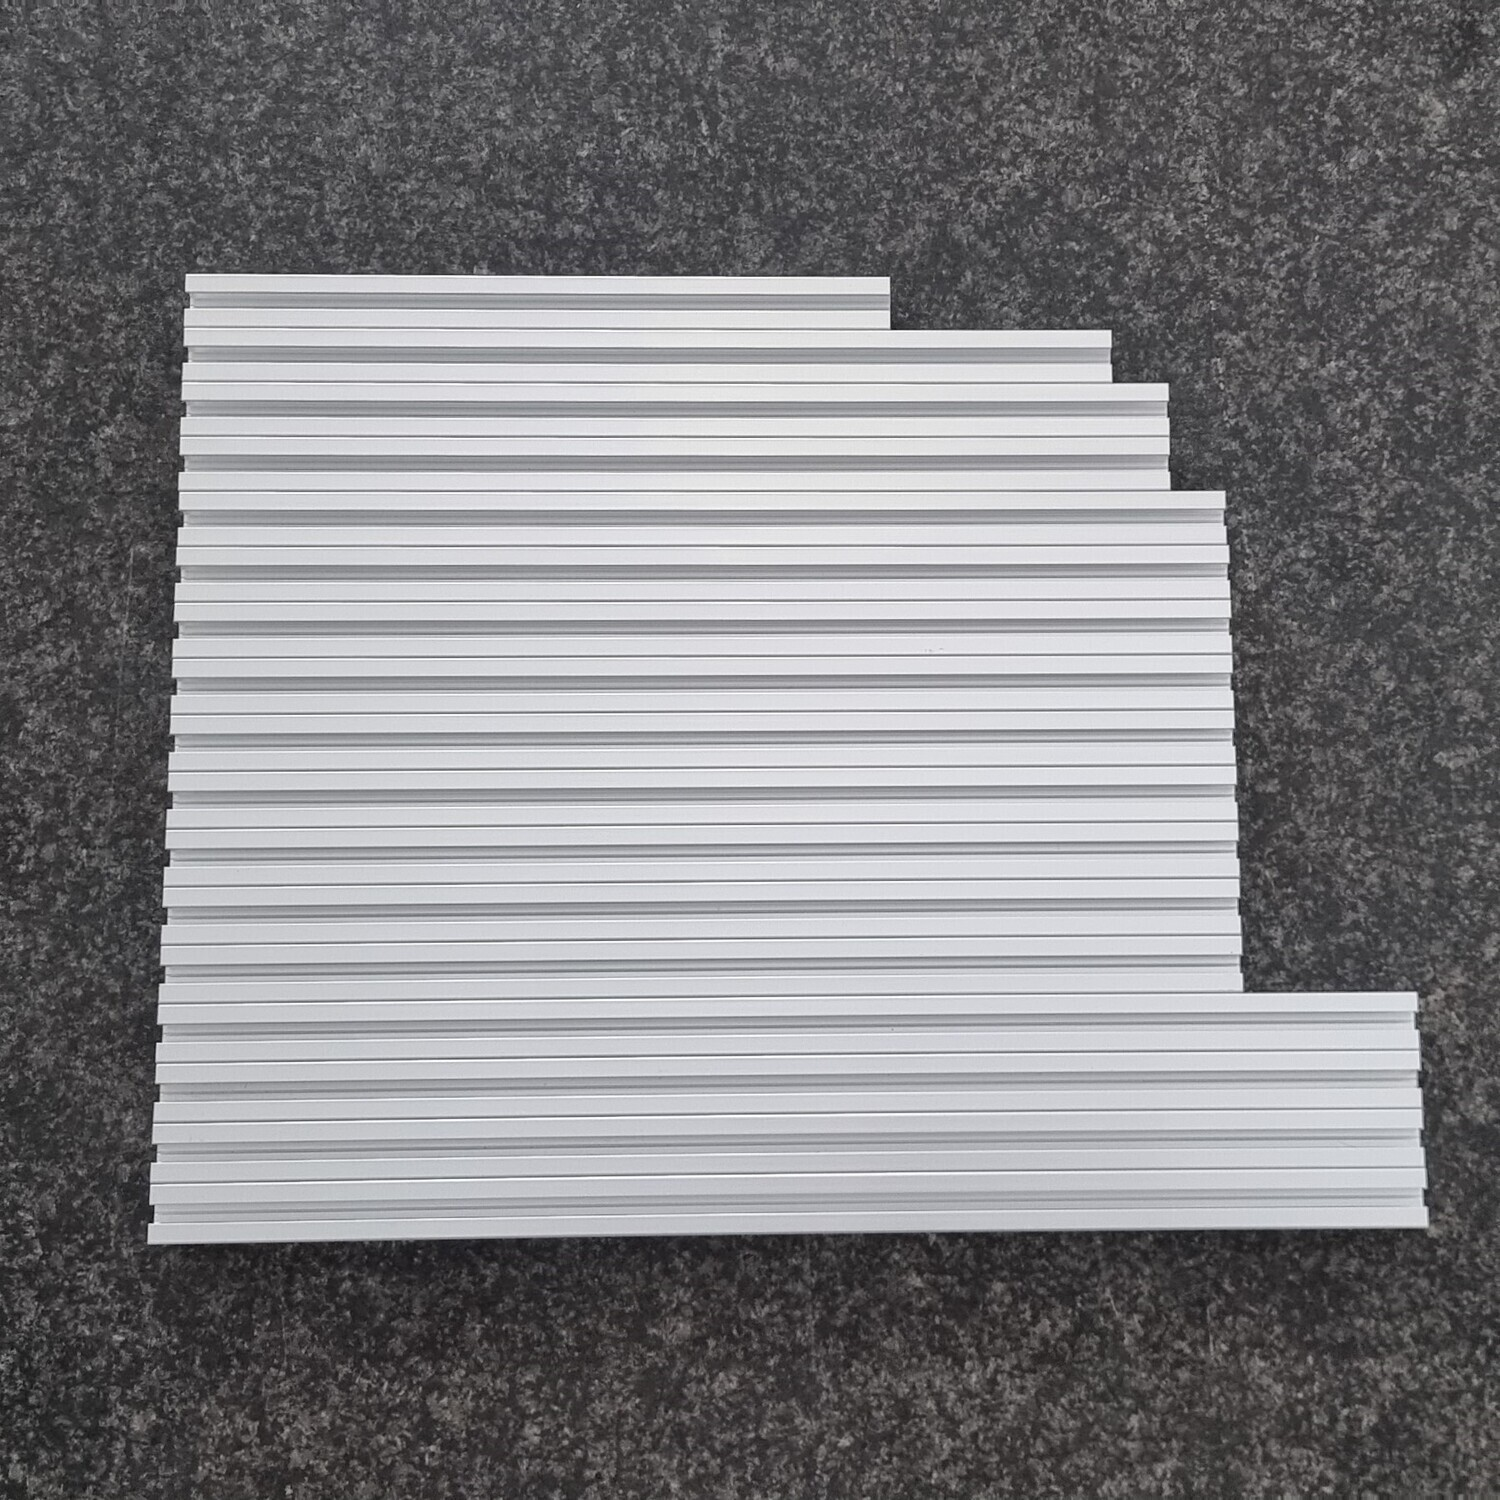 Misumi T Slot Set for Voron 2.4 (300mm, CLEAR Anodized)